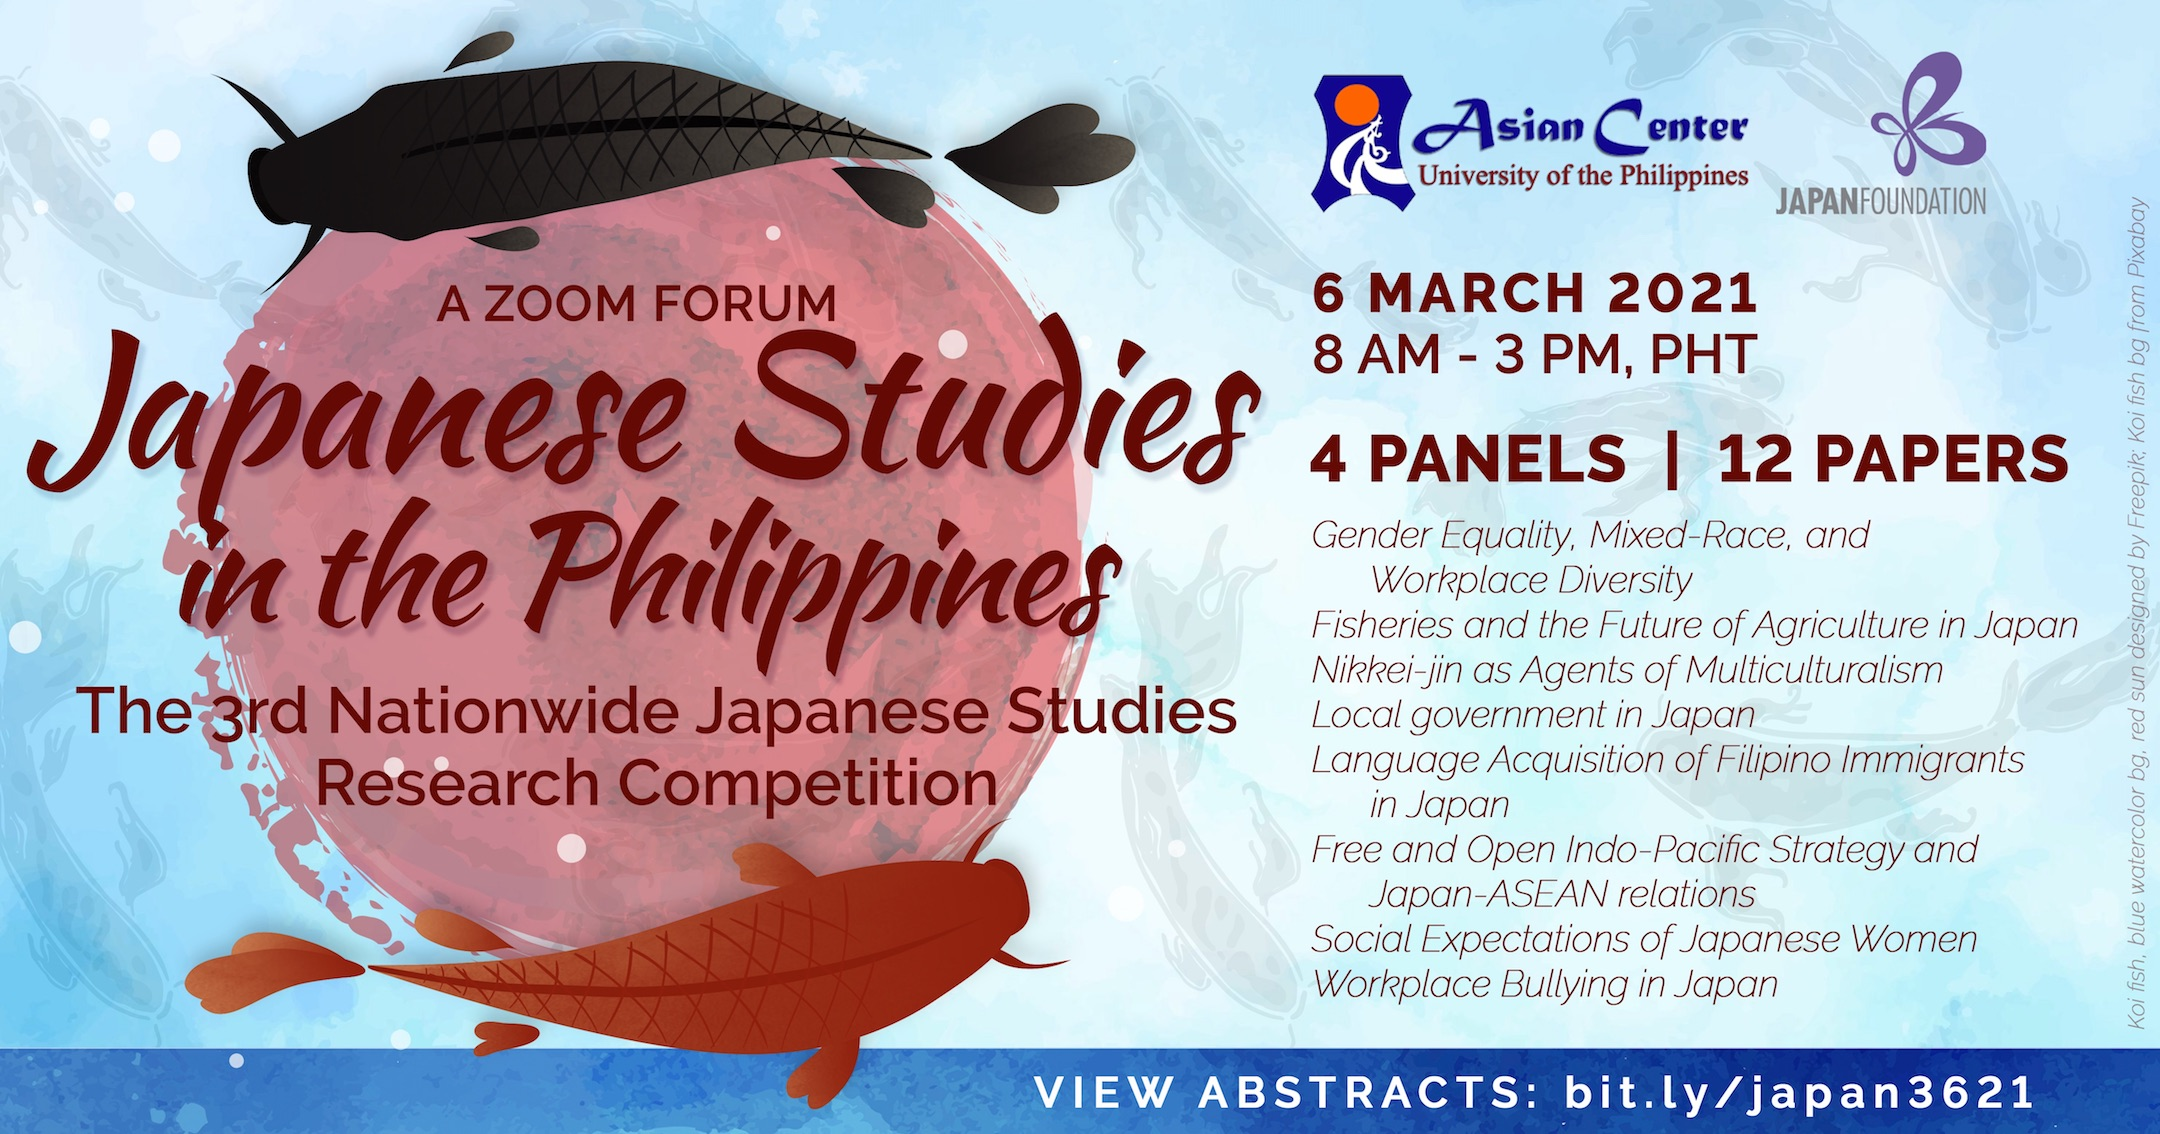 Japanese Studies in the Philippines: A Forum and Nationwide Research Competition Year 3 (6 Mar 2021)